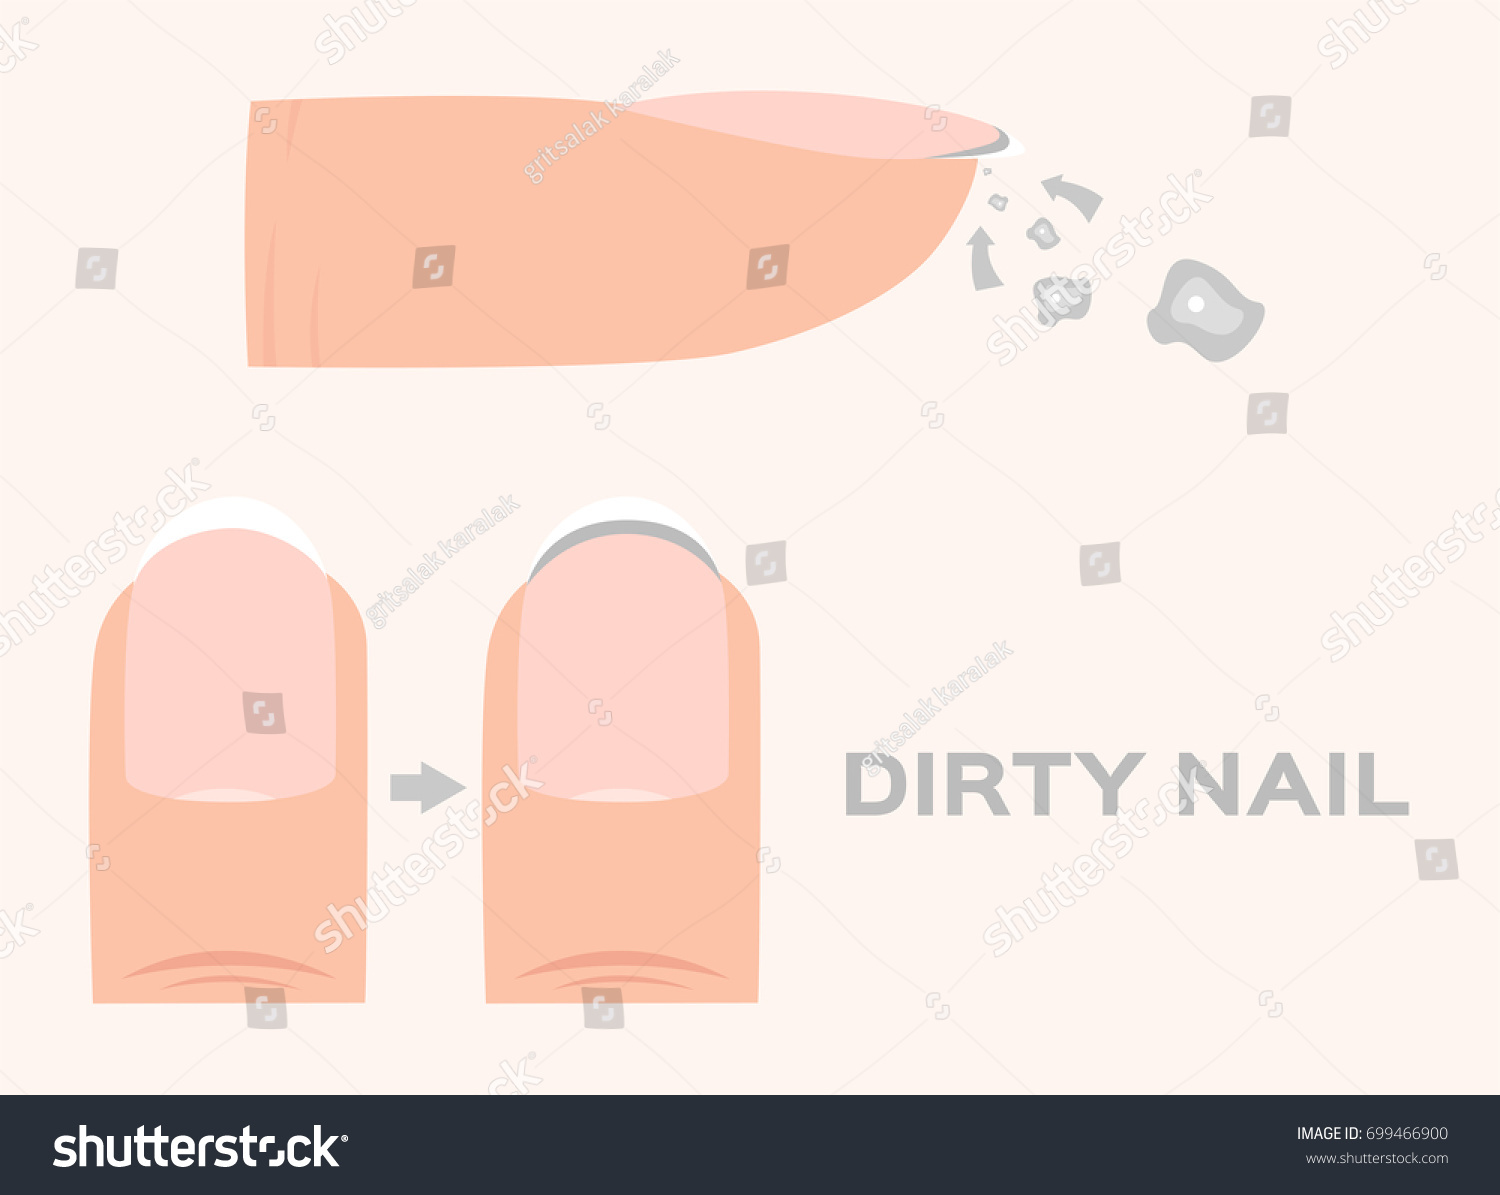 Structure dirty finger nail human anatomy stock vector 699466900 structure of a dirty finger nail human anatomy pooptronica Gallery